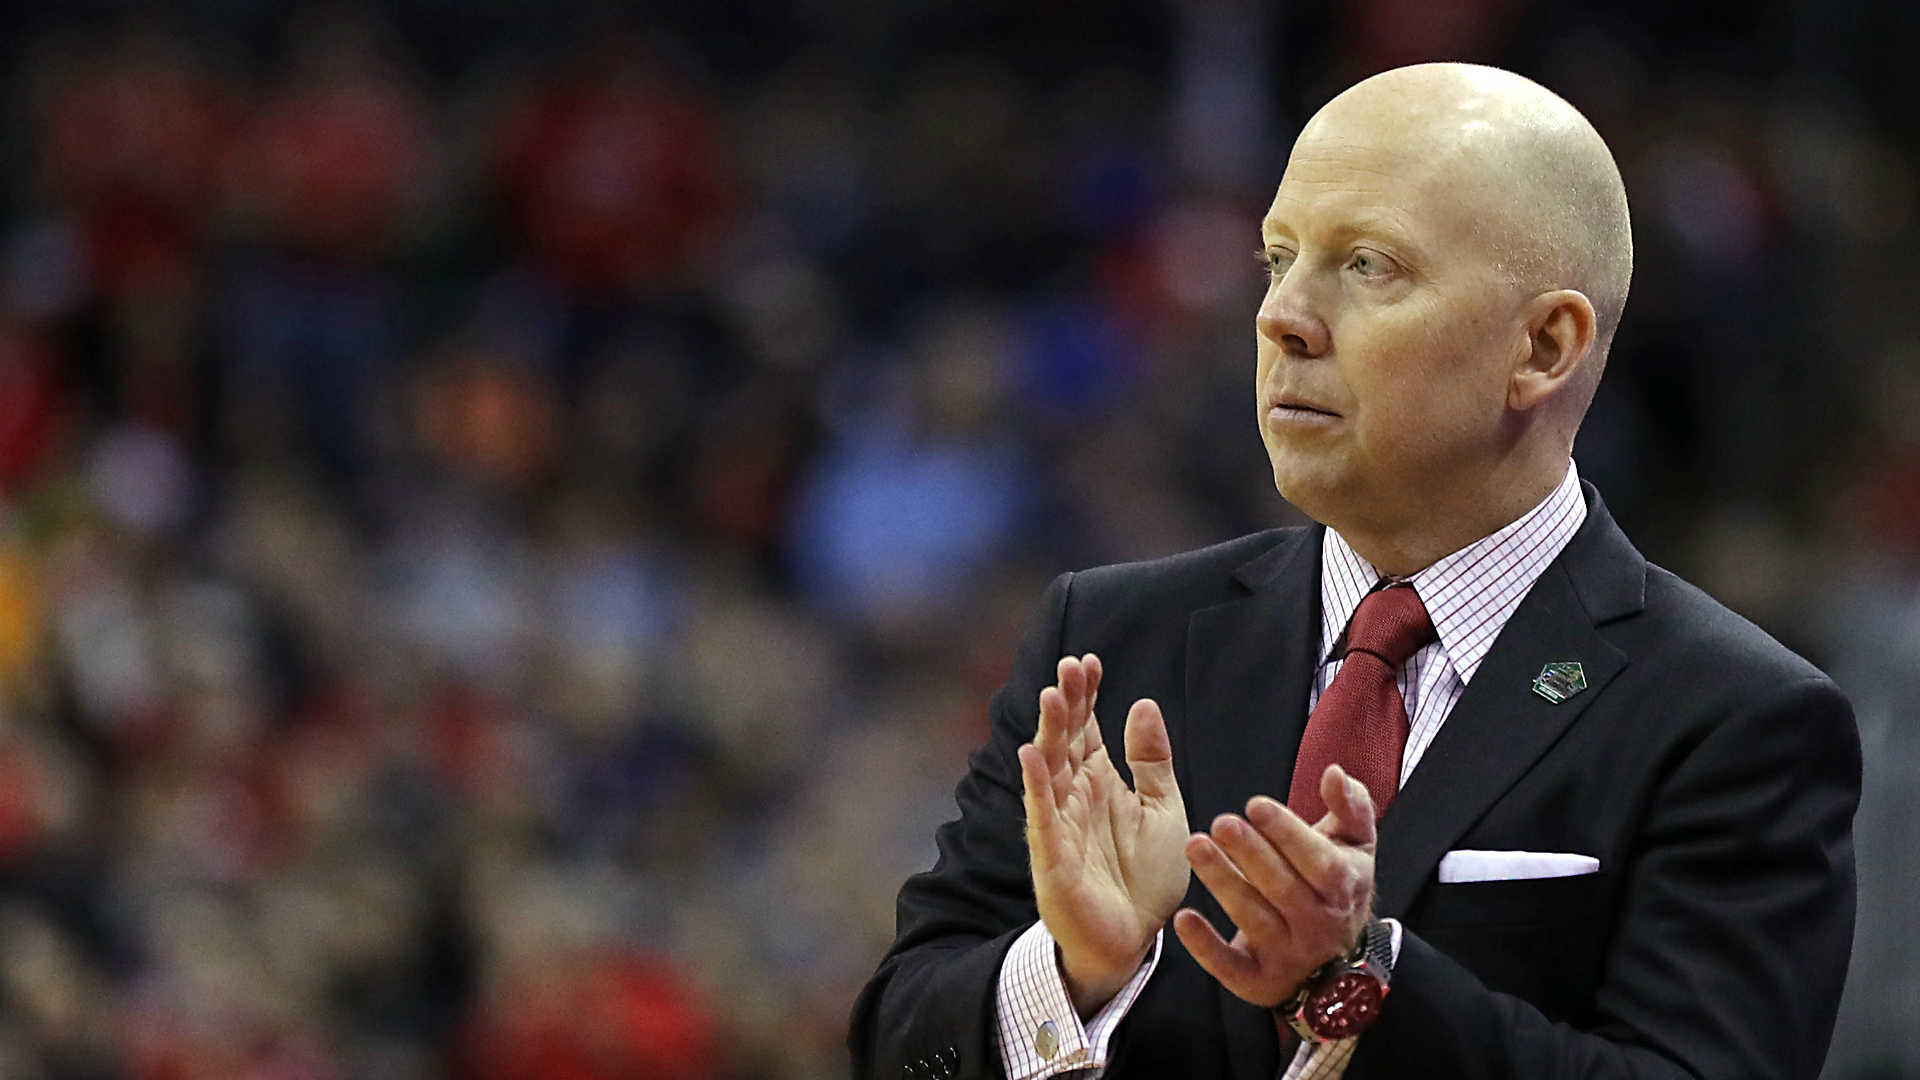 UCLA hires Cincinnati's Mick Cronin as men's basketball coach